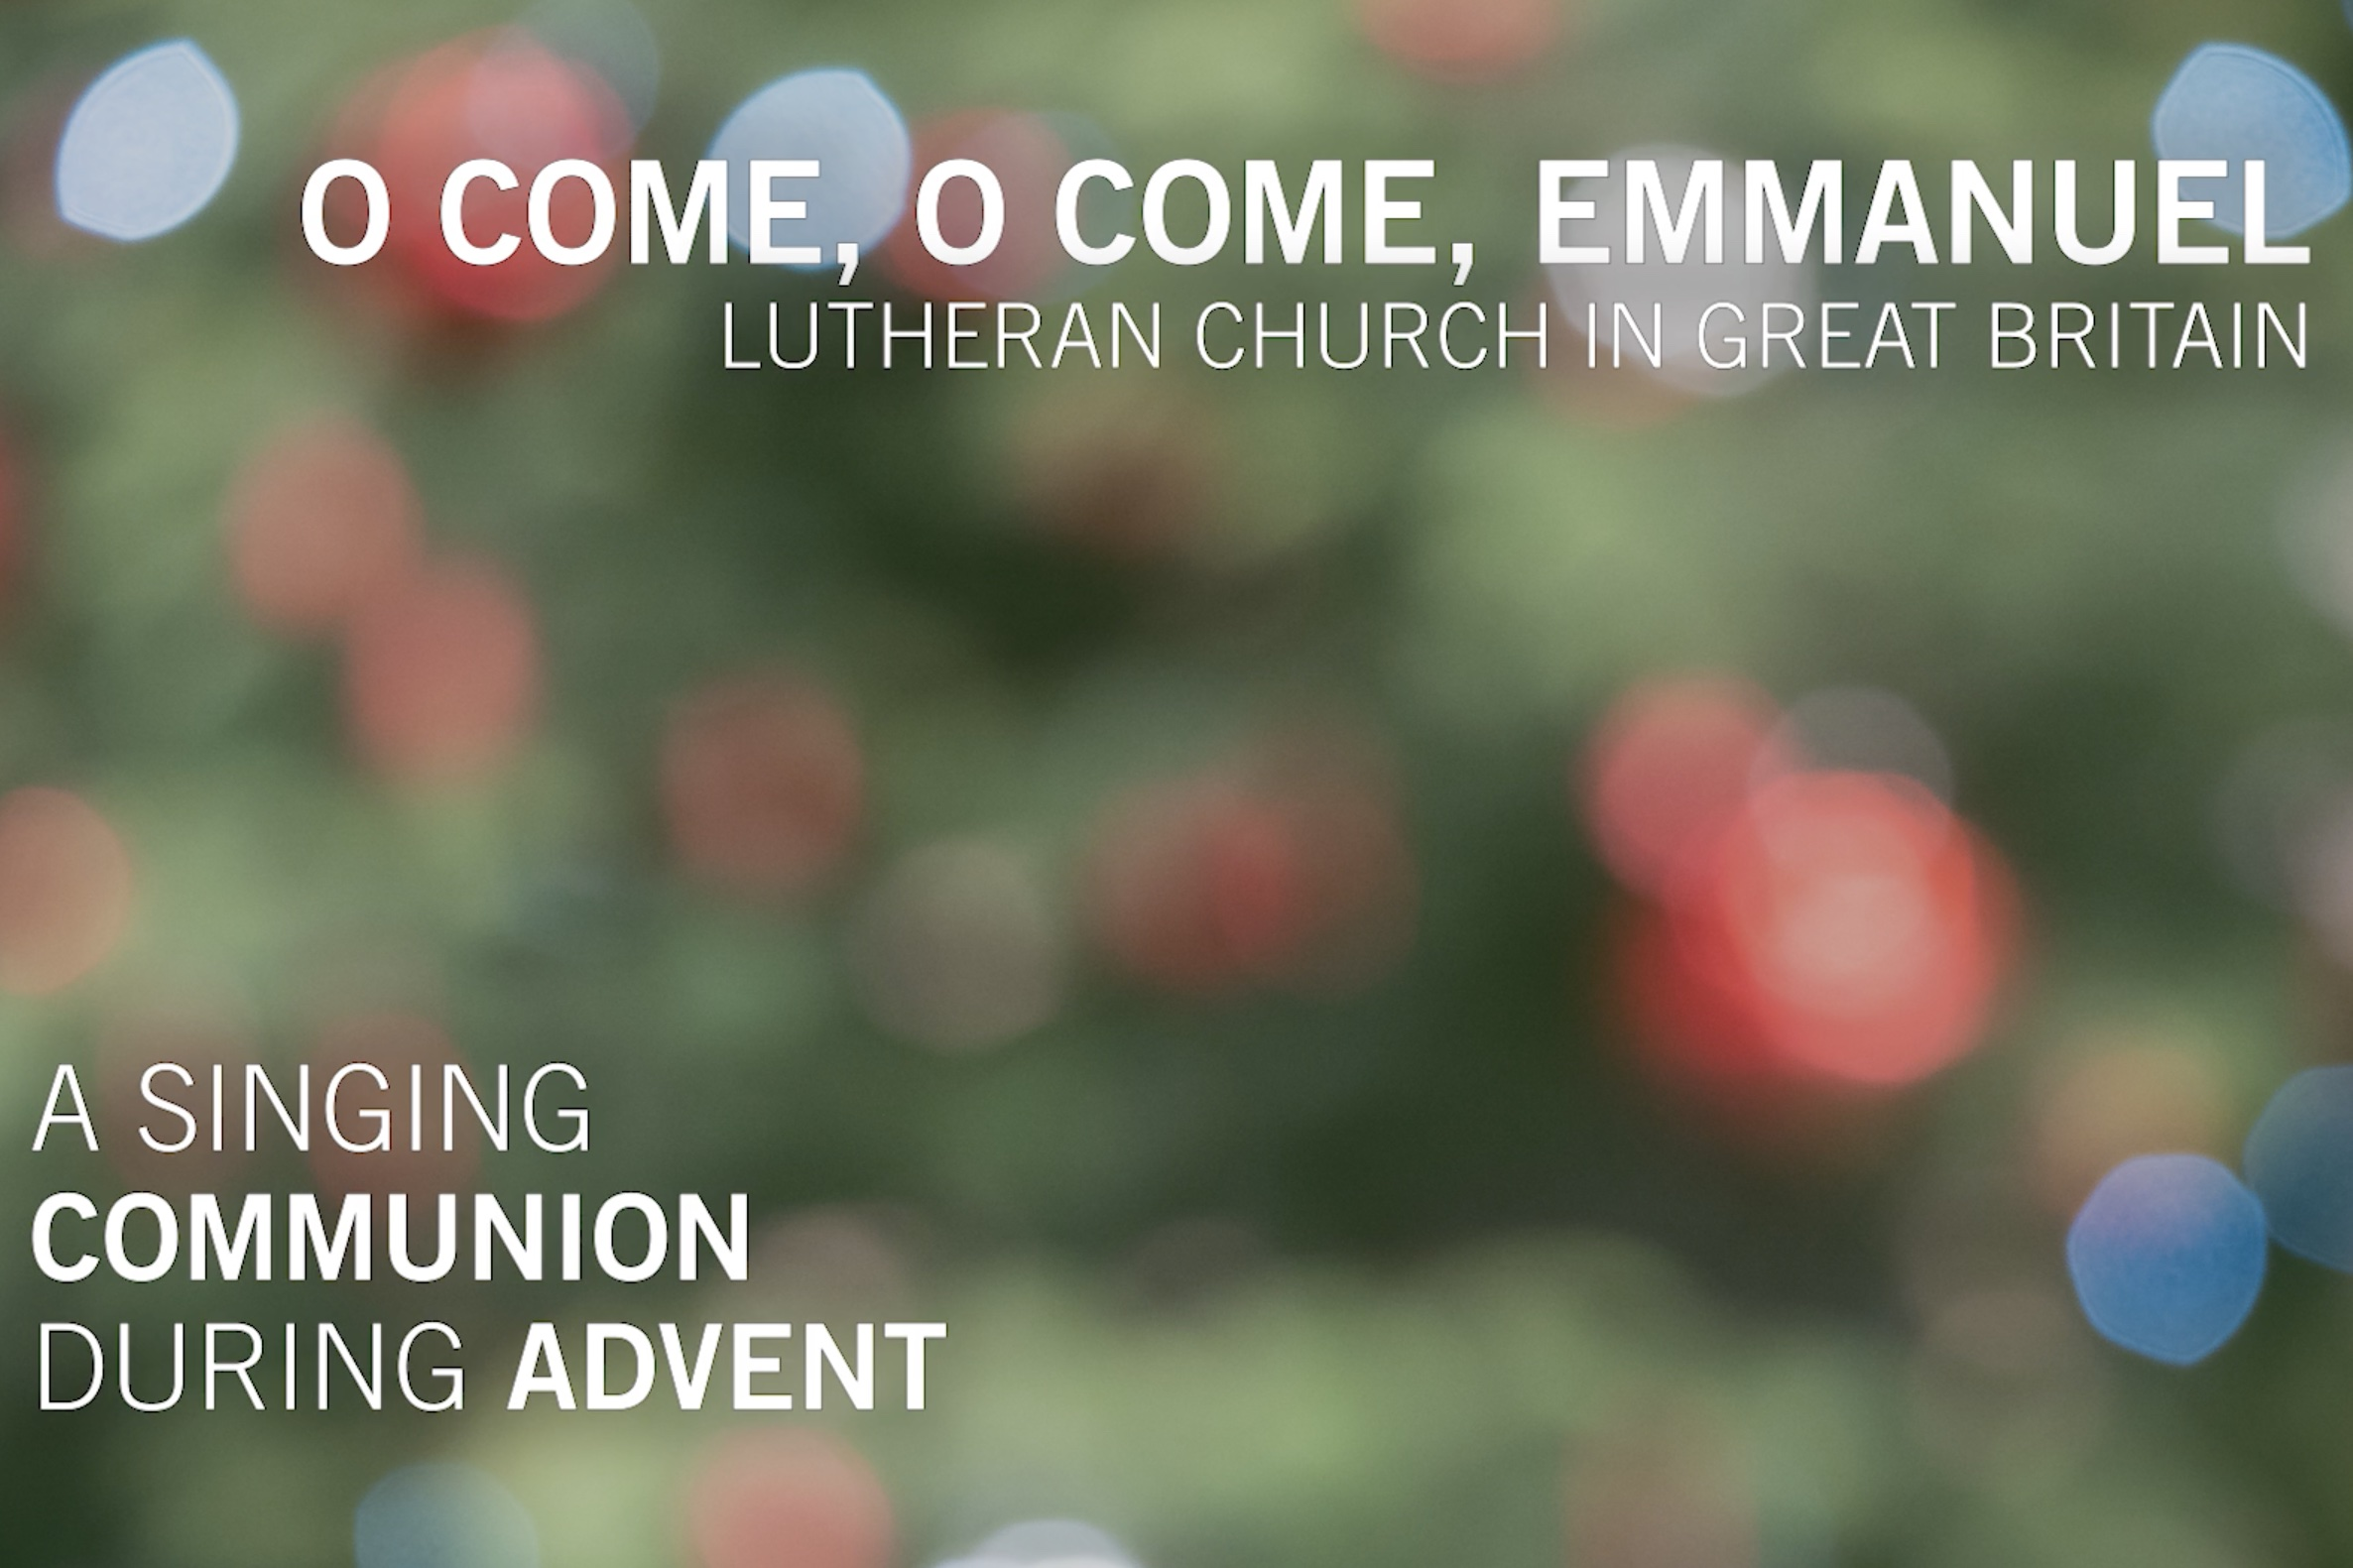 Lutherans in the UK are part of the LWF's singing communion in Advent 2020